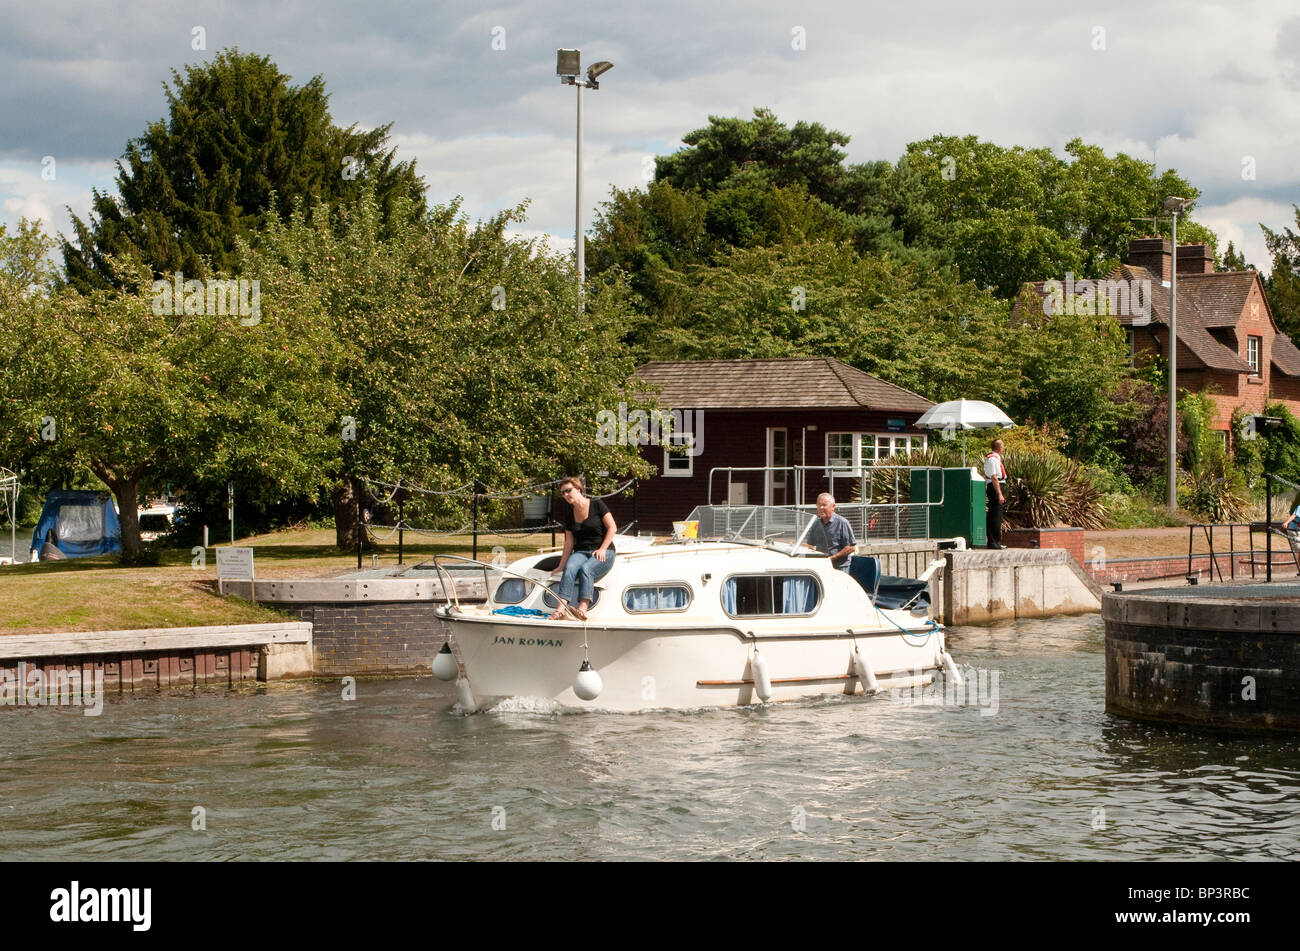 Boat Leaving Hambleden Lock River Thames on a sunny day in August - Stock Image